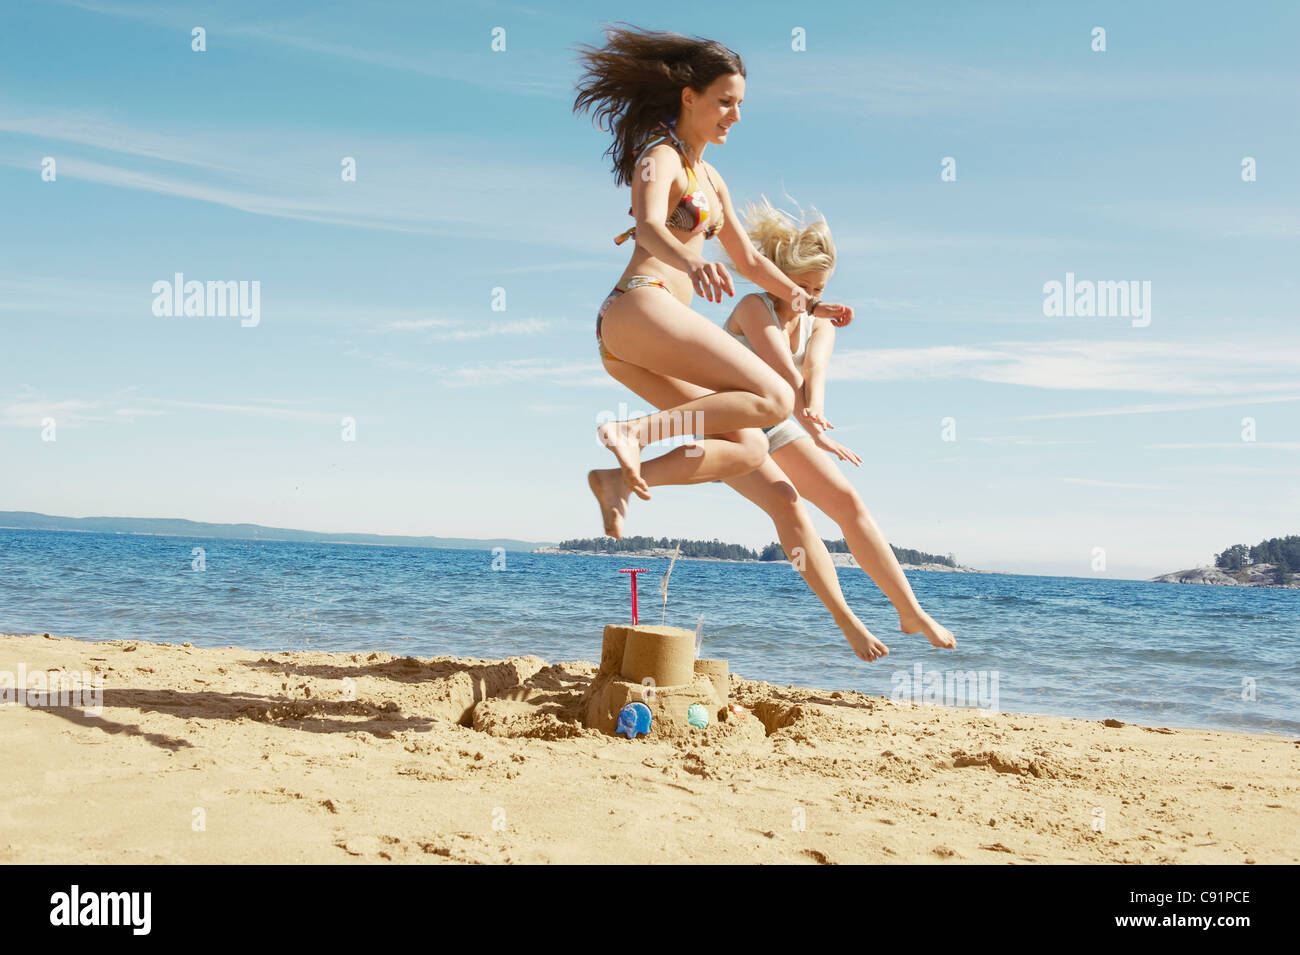 Women jumping over sandcastle - Stock Image